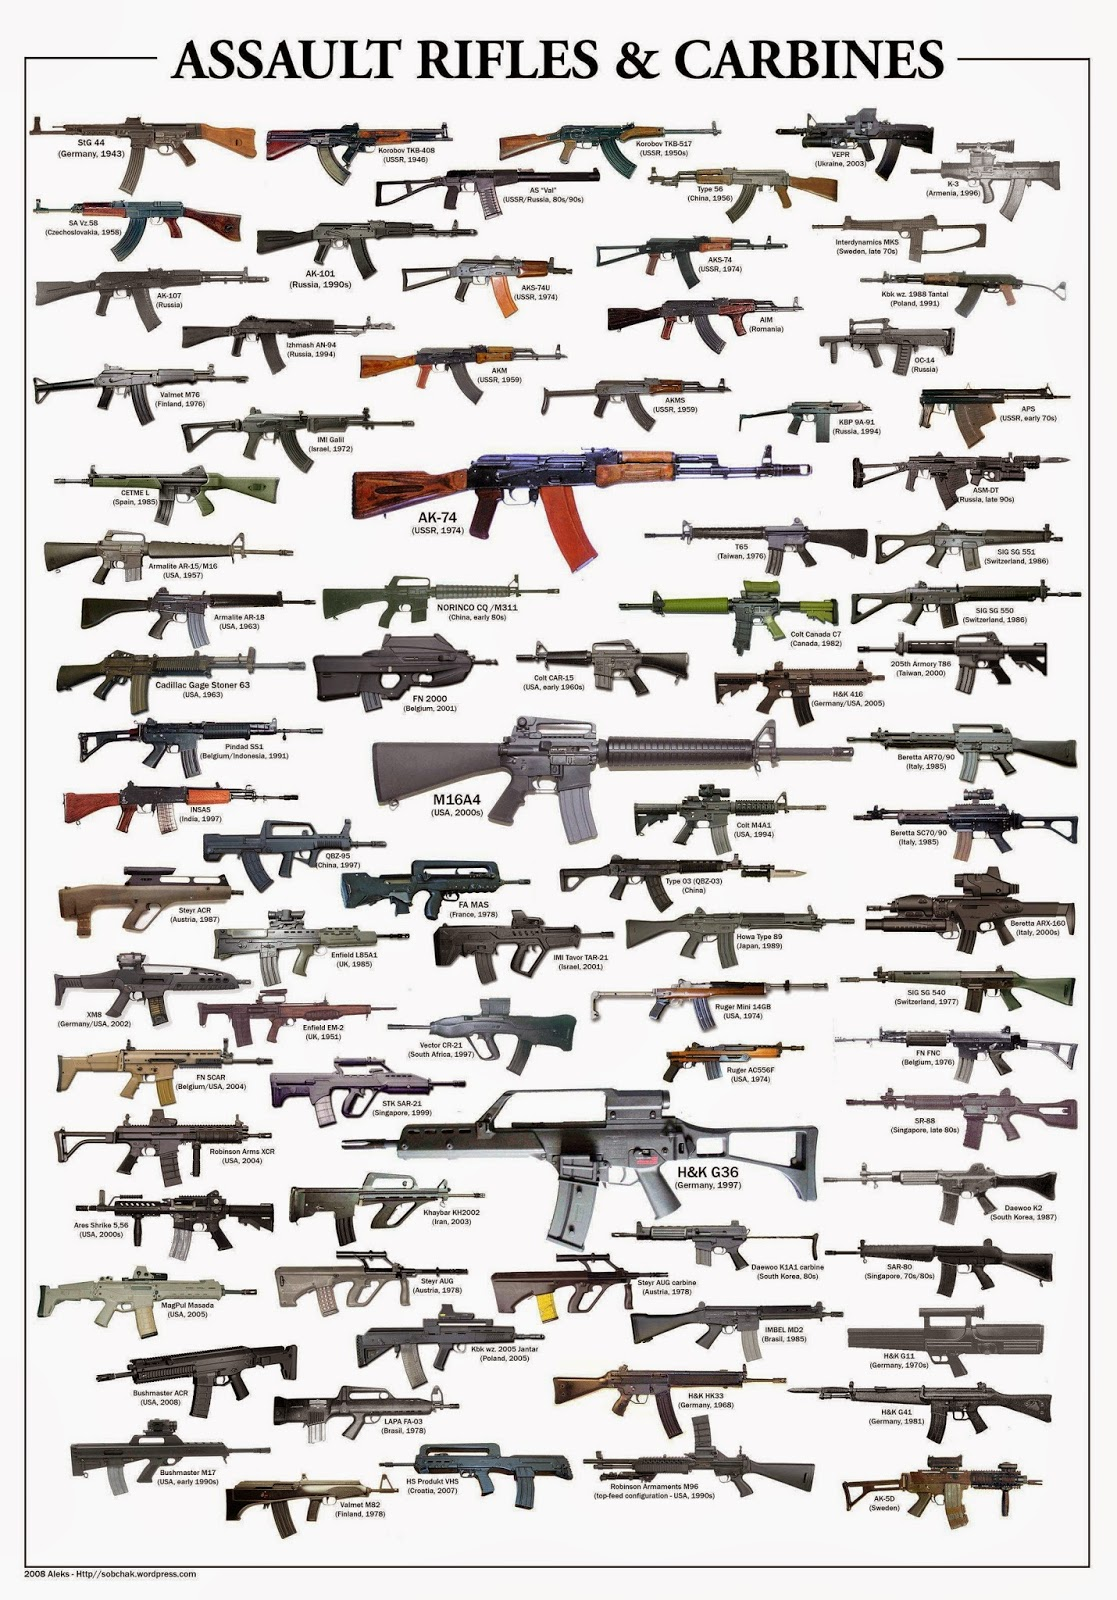 Semi Auto Assault Rifle and Carbine Identification Chart